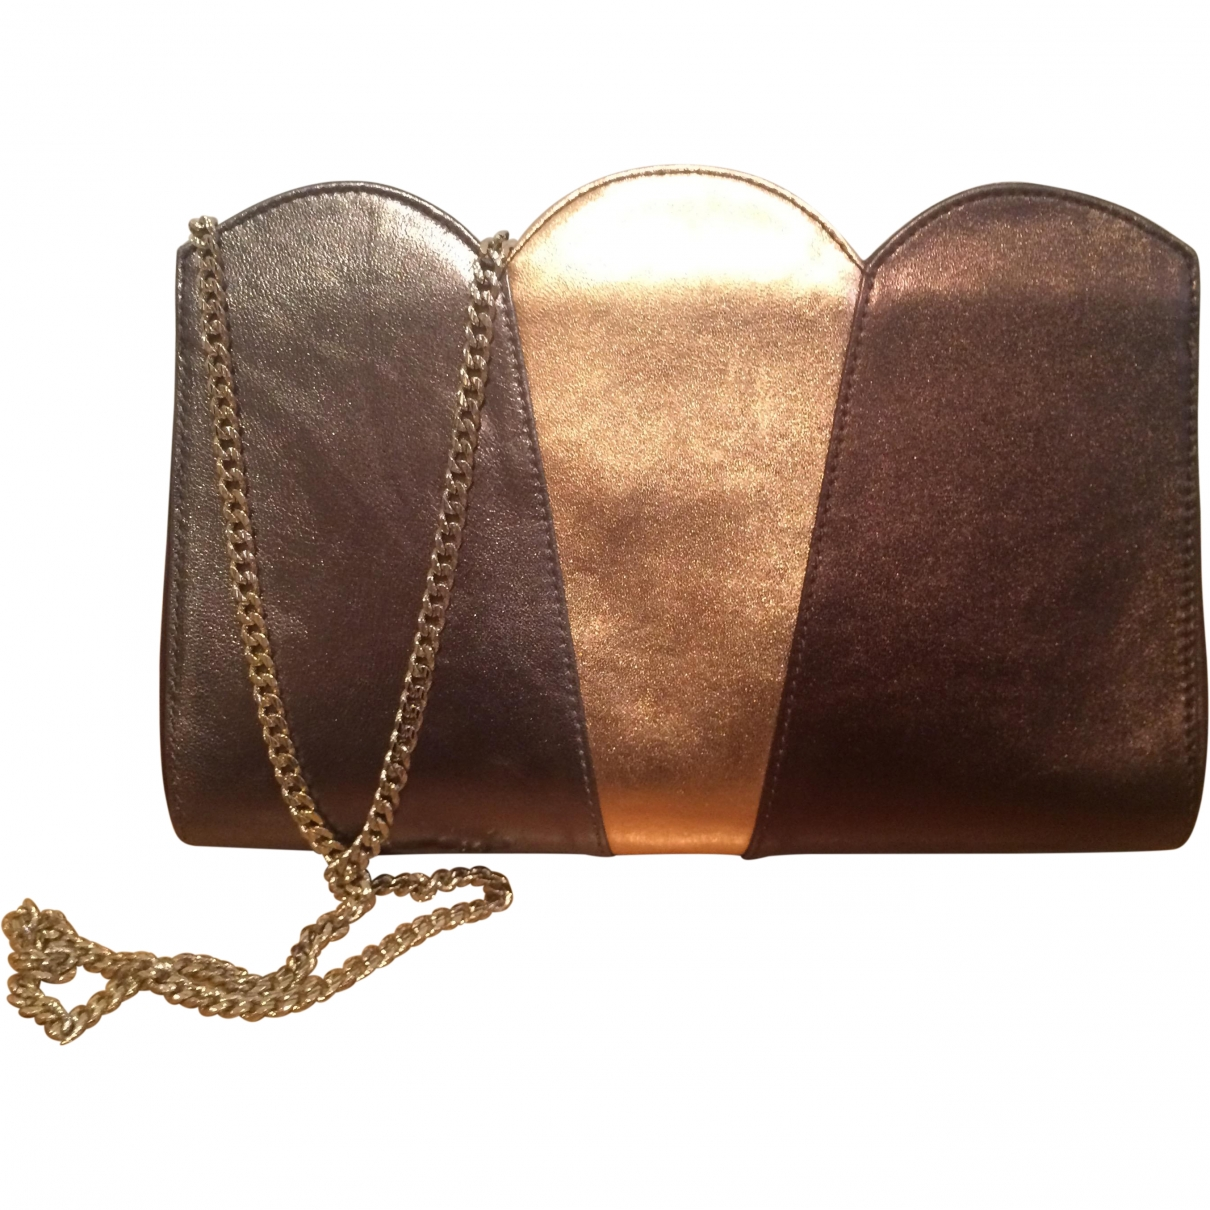 Uterque \N Gold Leather Clutch bag for Women \N